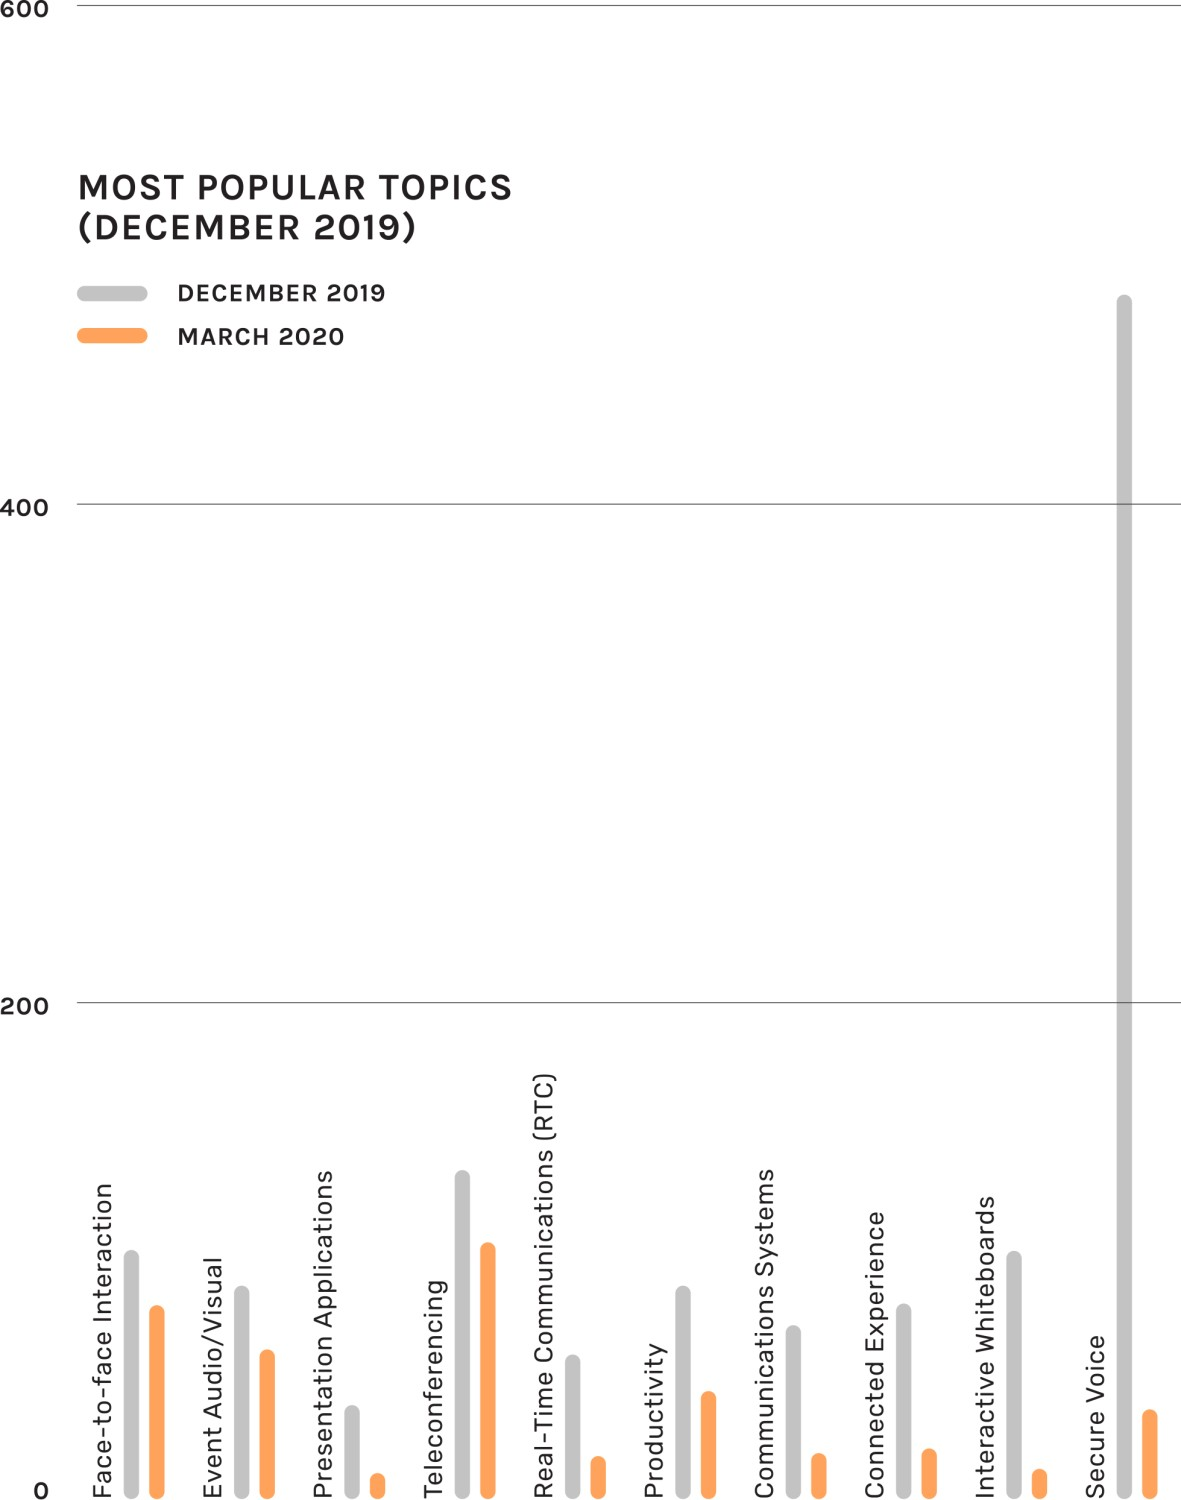 Most popular topics graph for December 2019